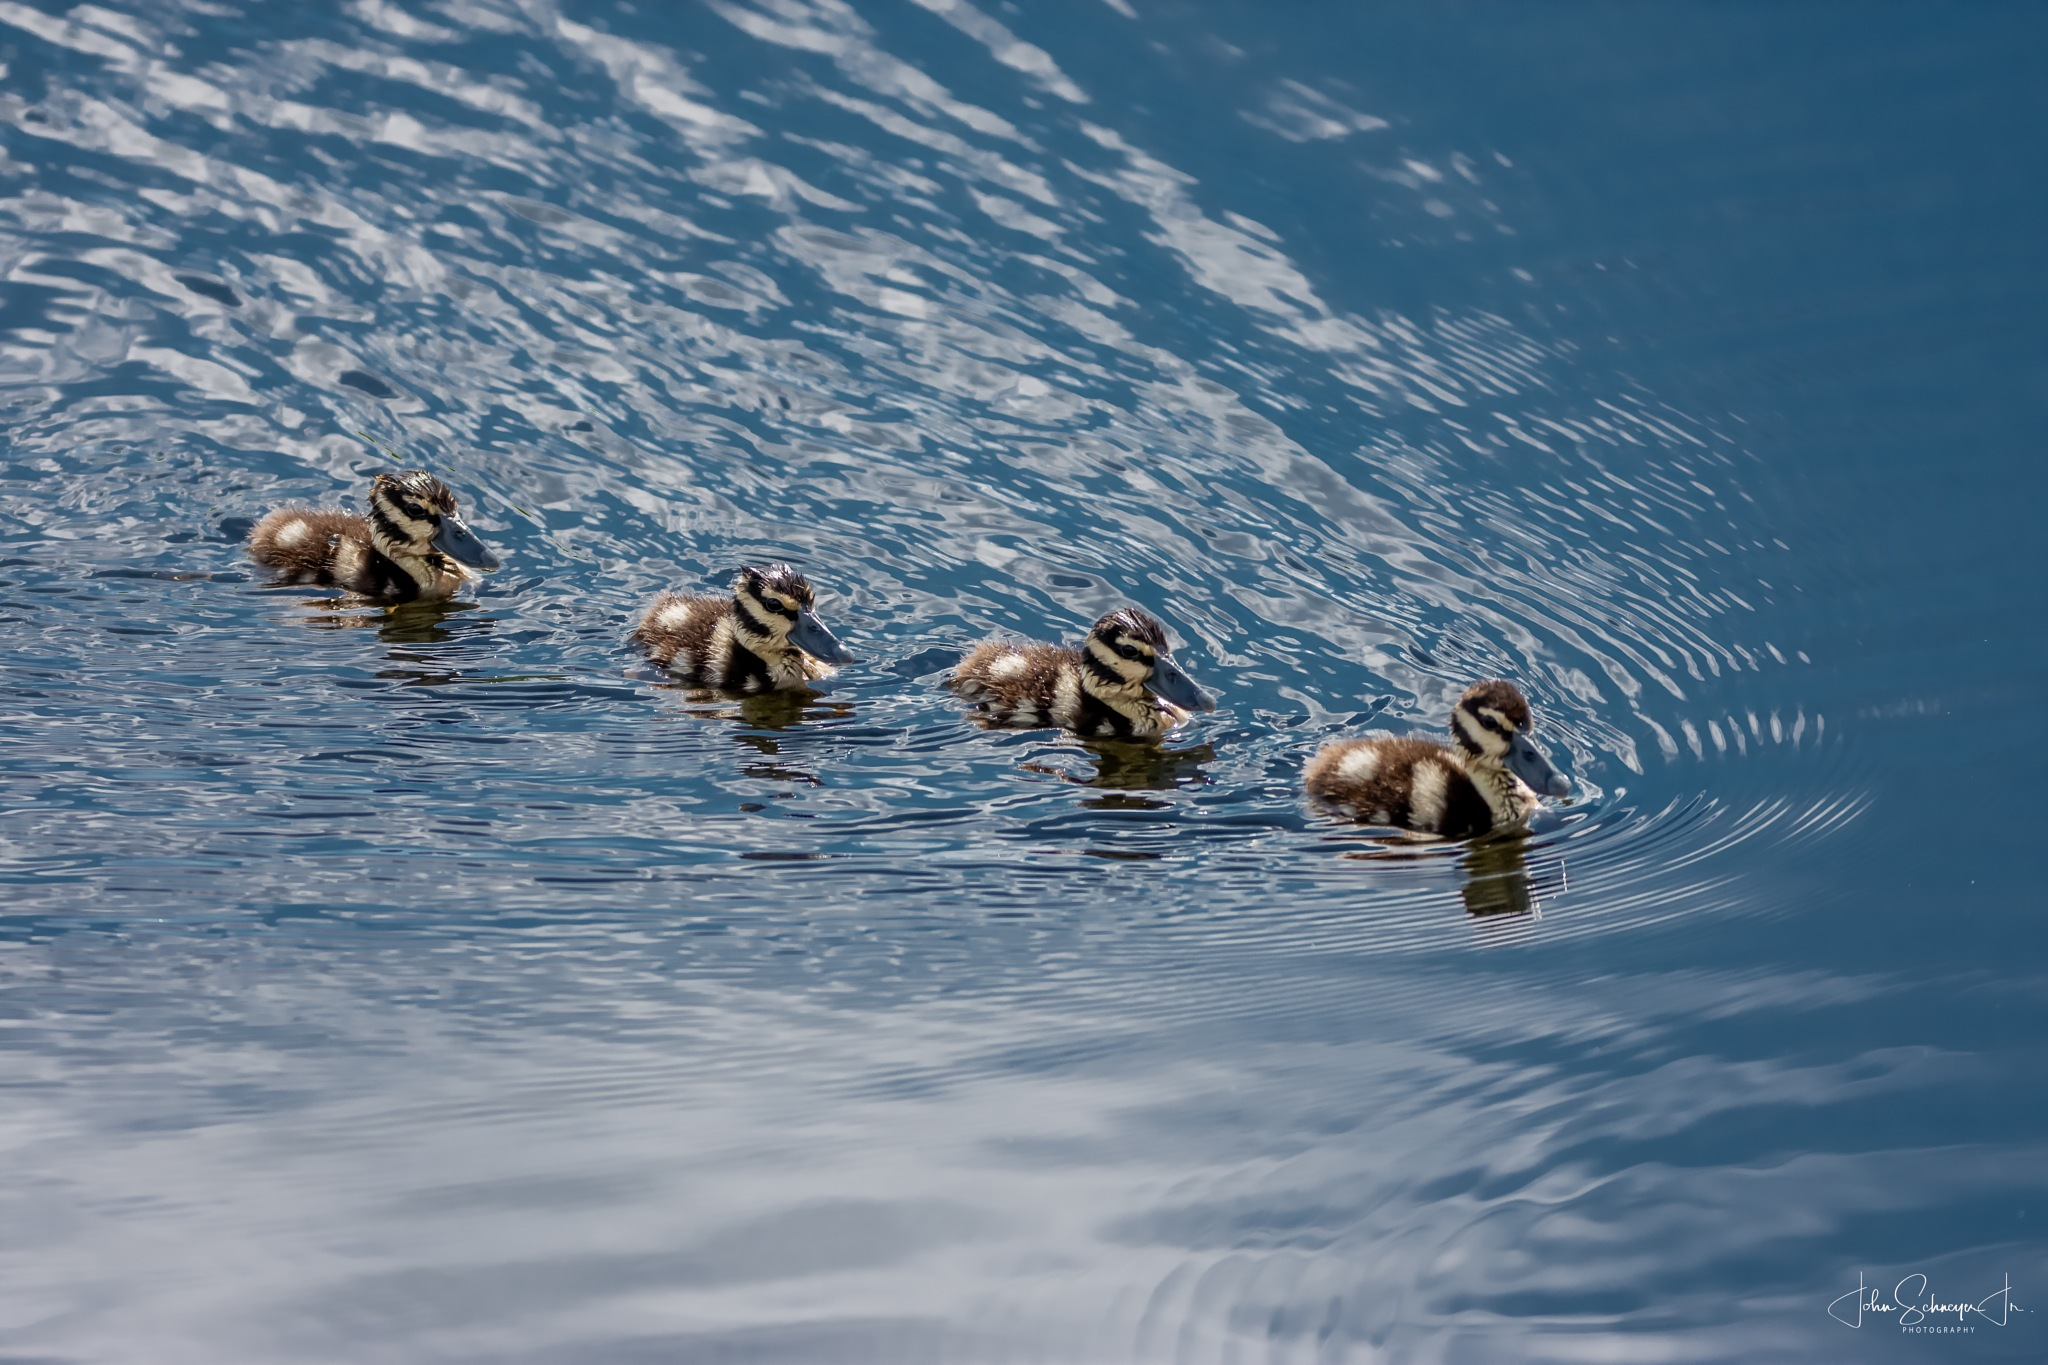 Get Your Ducks in a Row by John Schneyer